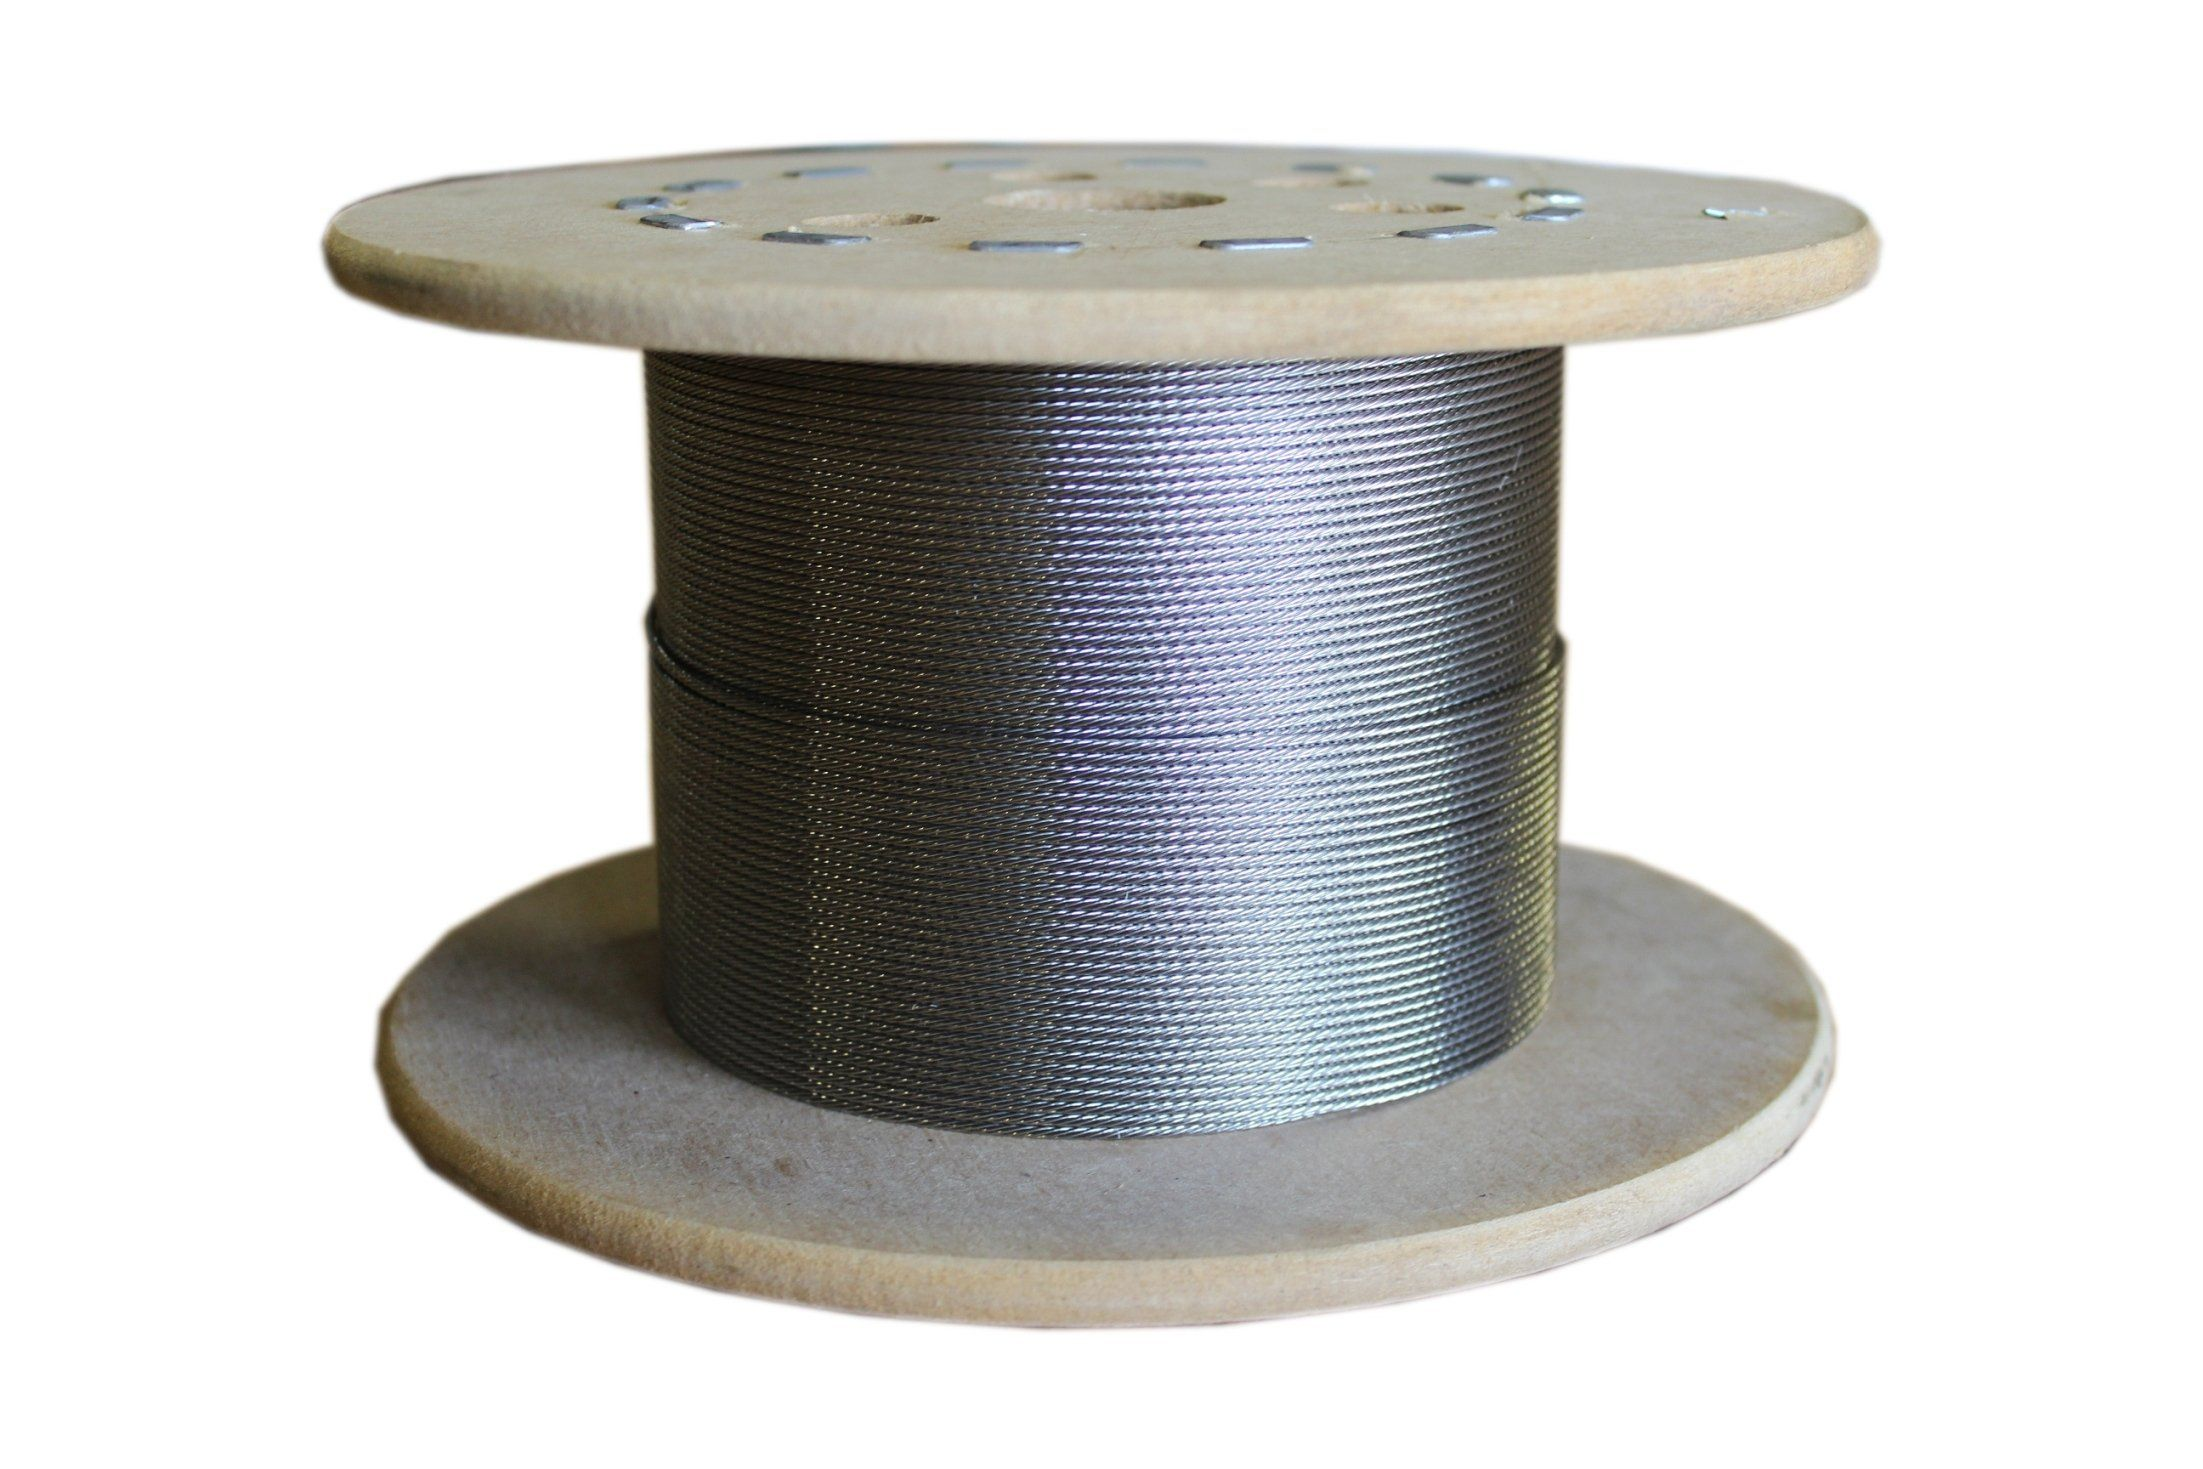 "Loos Stainless Steel 302 304 Wire Rope 1x7 Strand 3 64"" Bare OD"